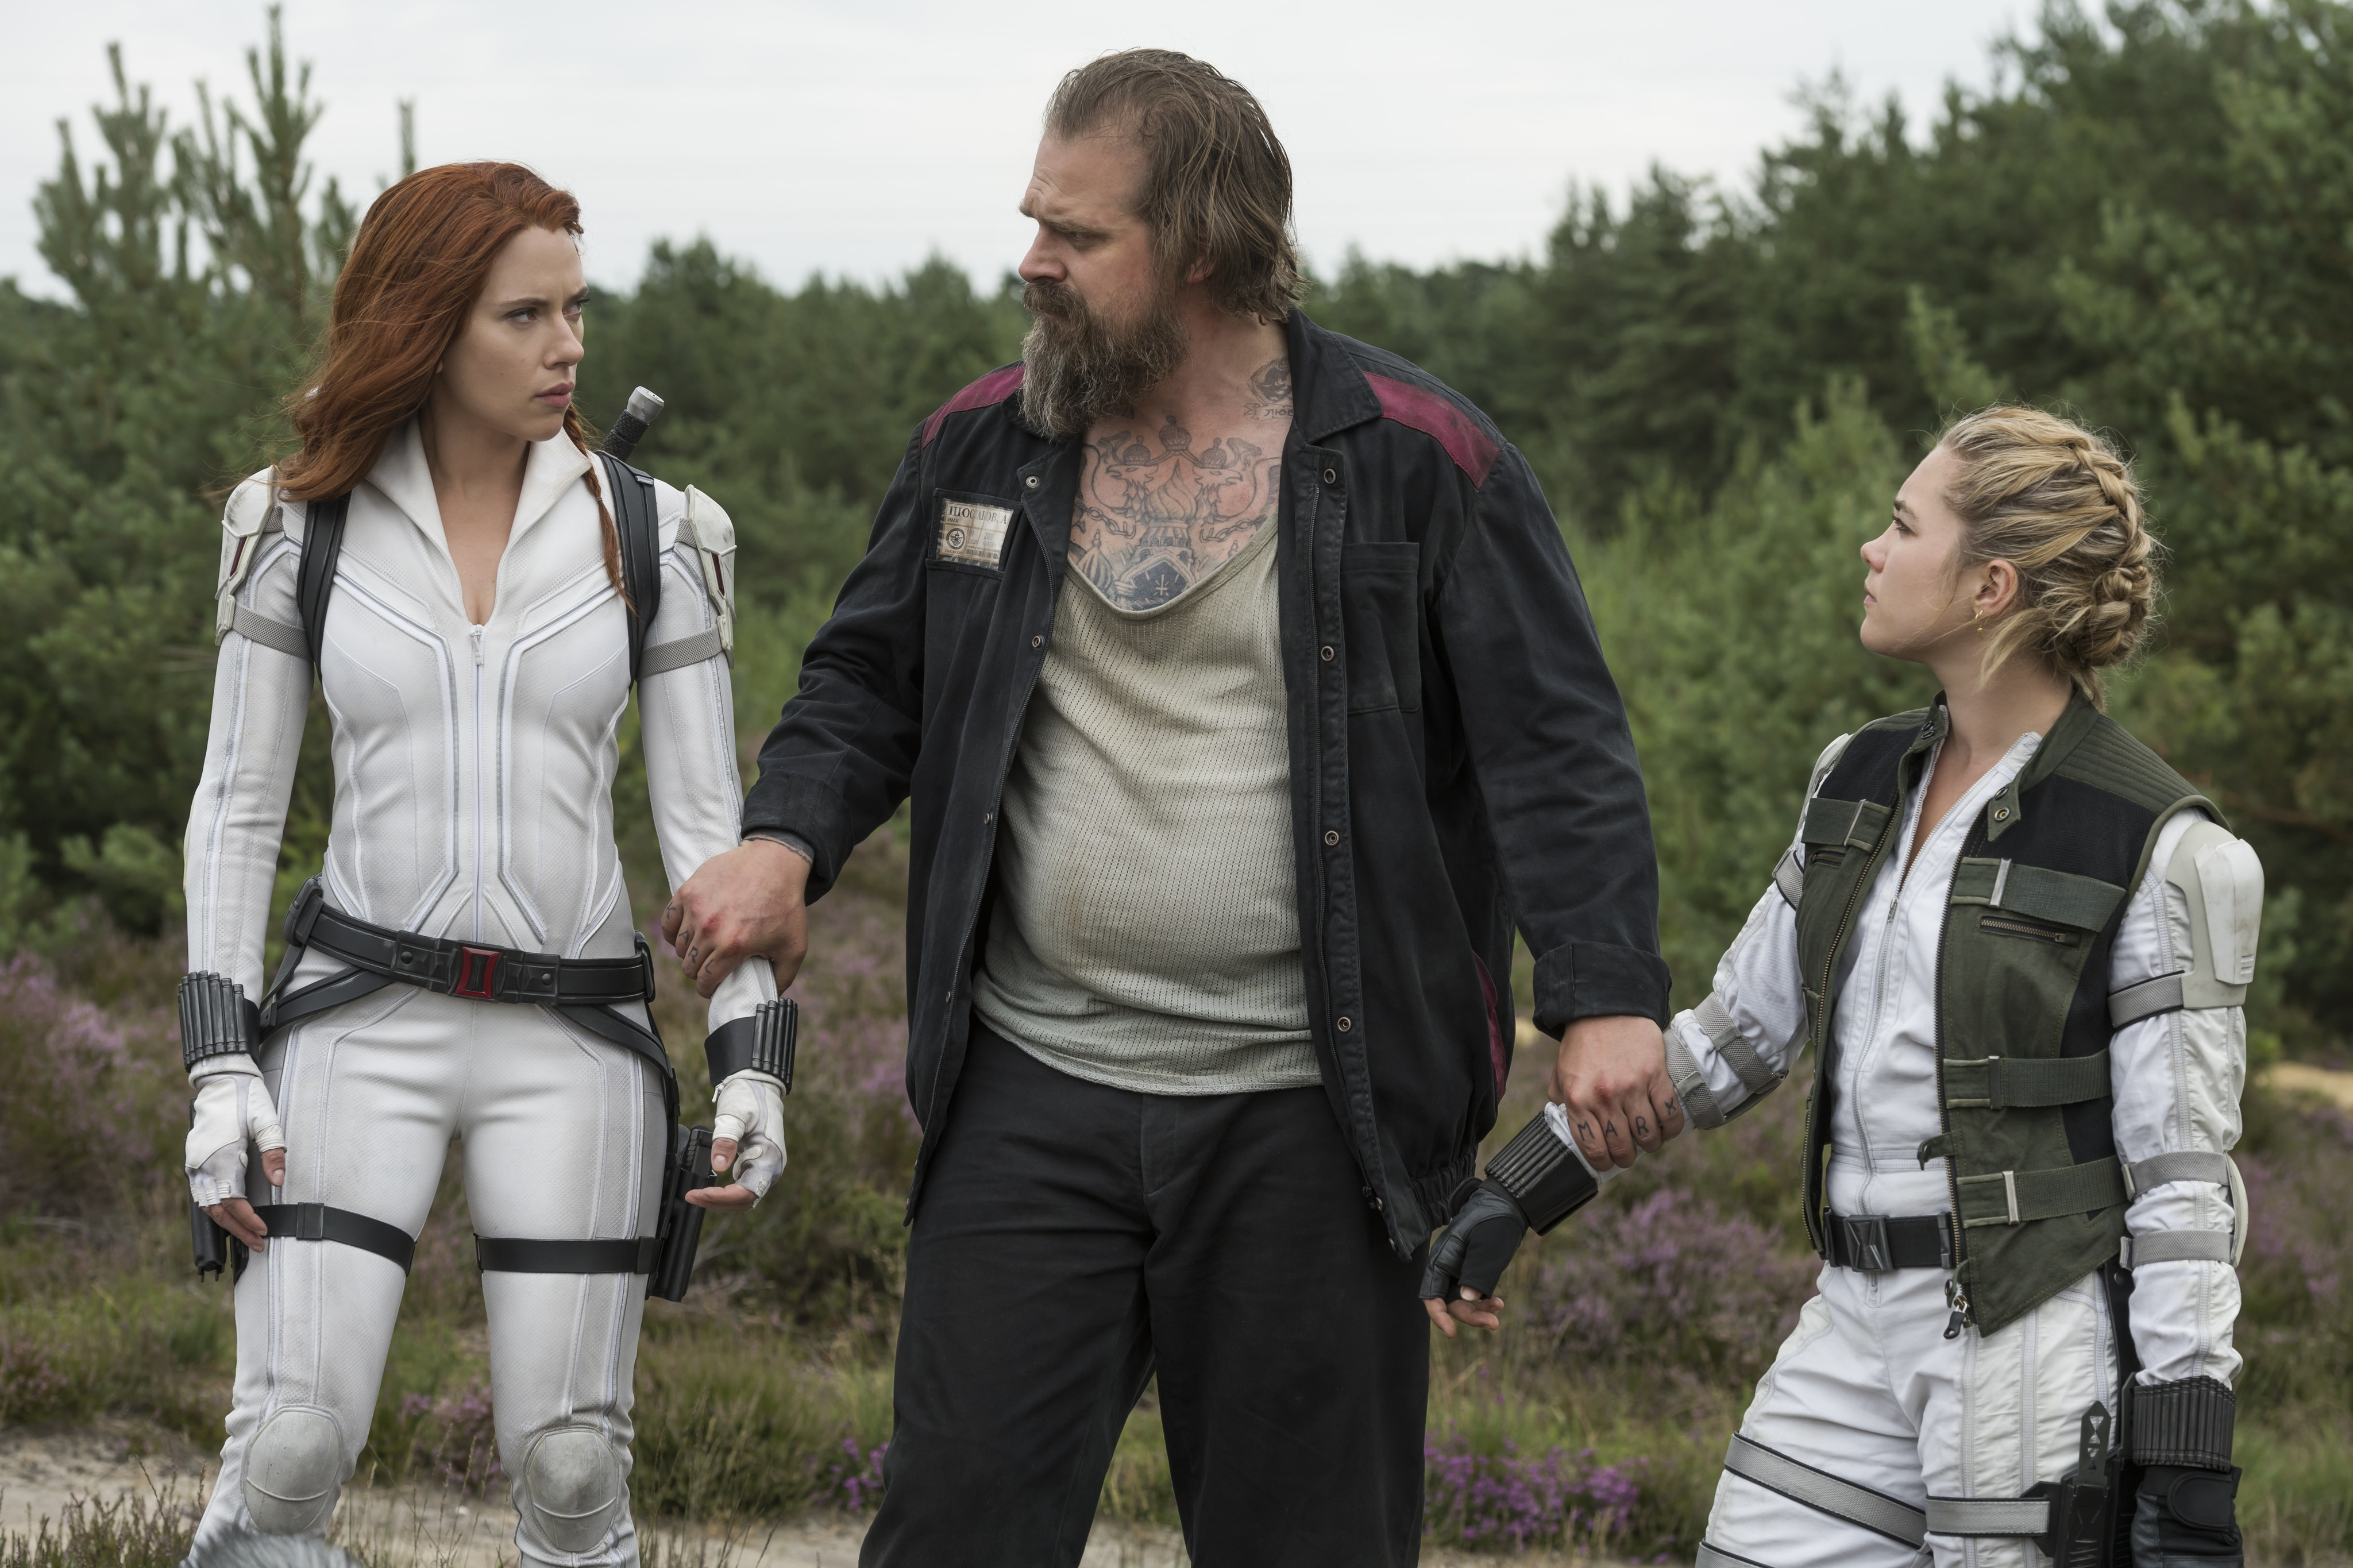 David Harbour, Scarlett Johansson, and Florence Pugh Behind-the-Scenes of Black Widow